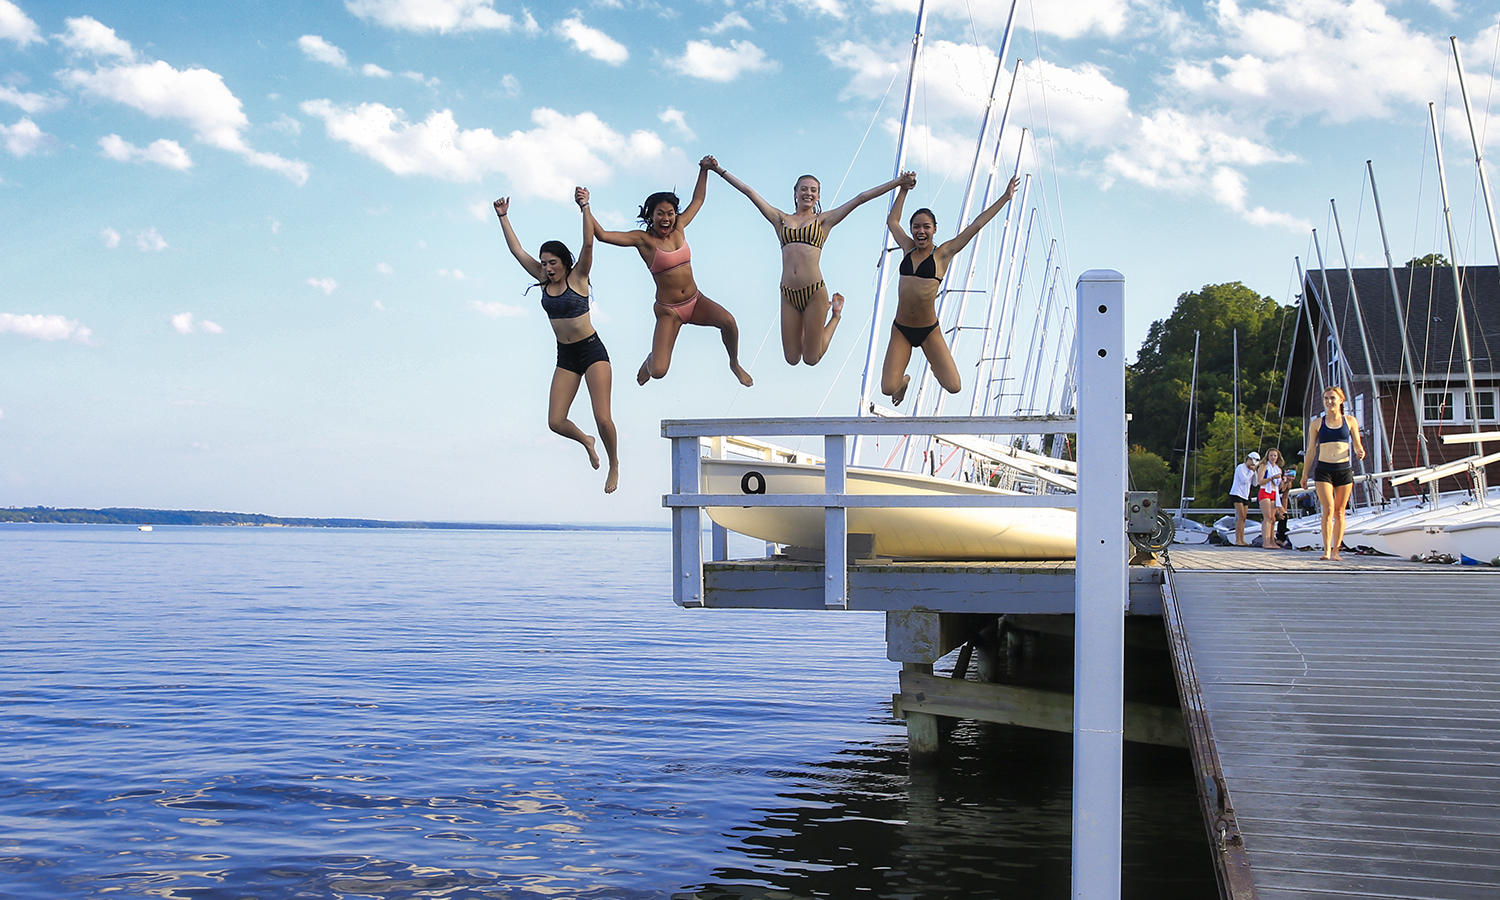 Members of the William Smith Cross Country jump into Seneca Lake.